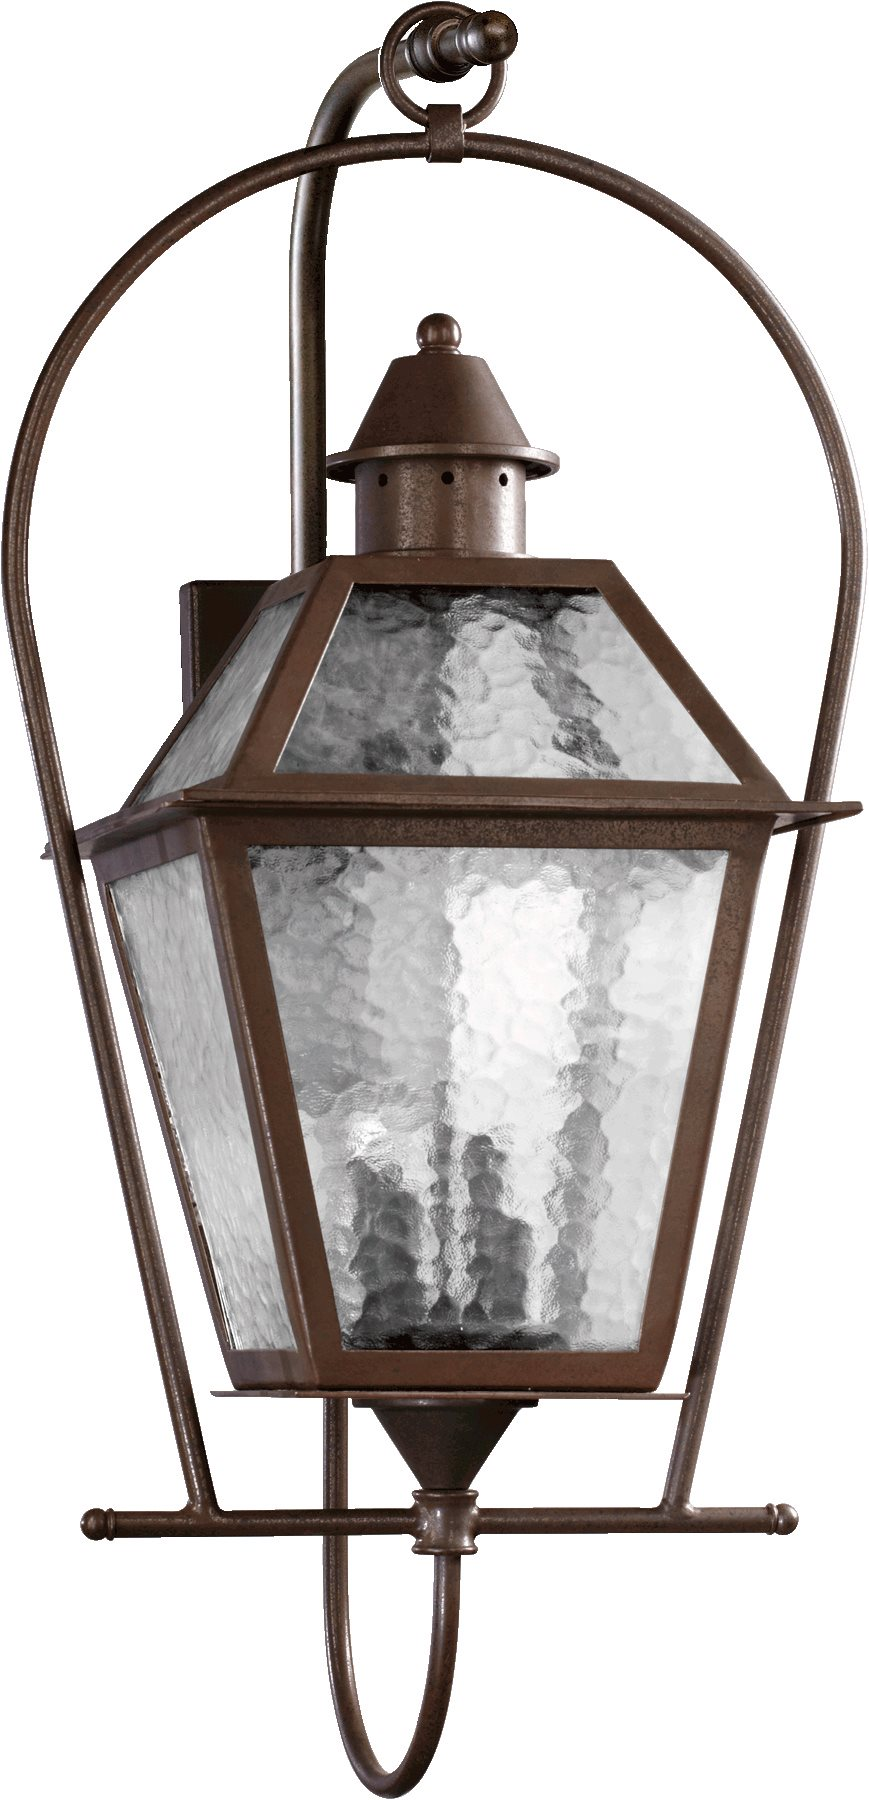 Quorum lighting 7919 4 86 french quarter transitional for Outdoor sconce lighting fixtures